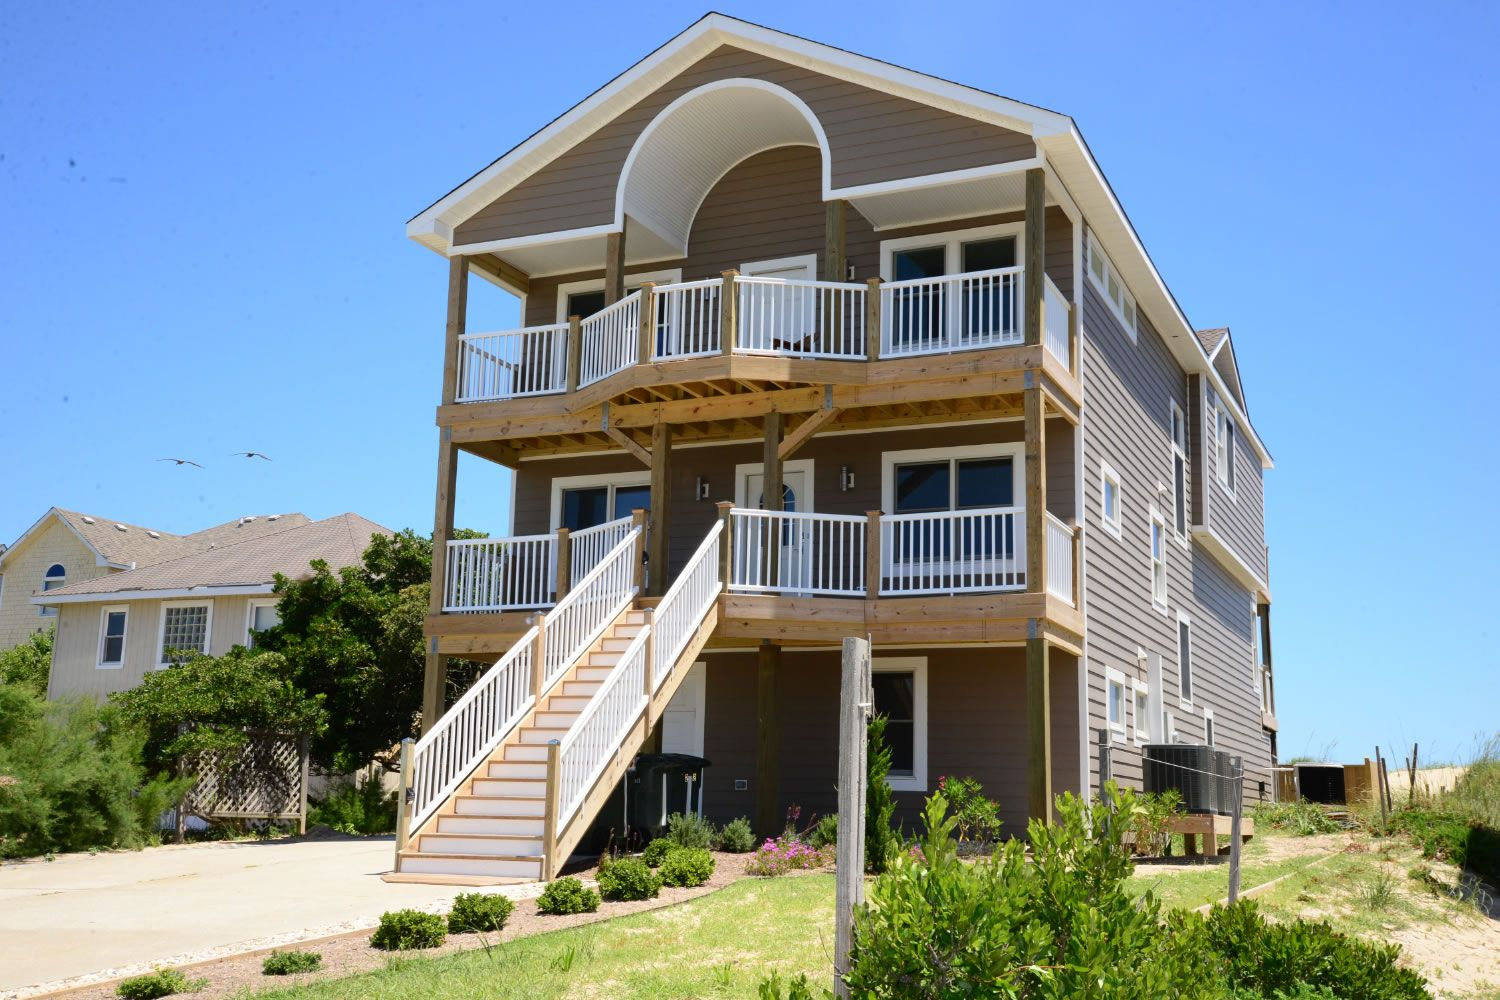 outer harry an of obx vacation house beach is s oceanfront banks harbor cottages rentals awesome